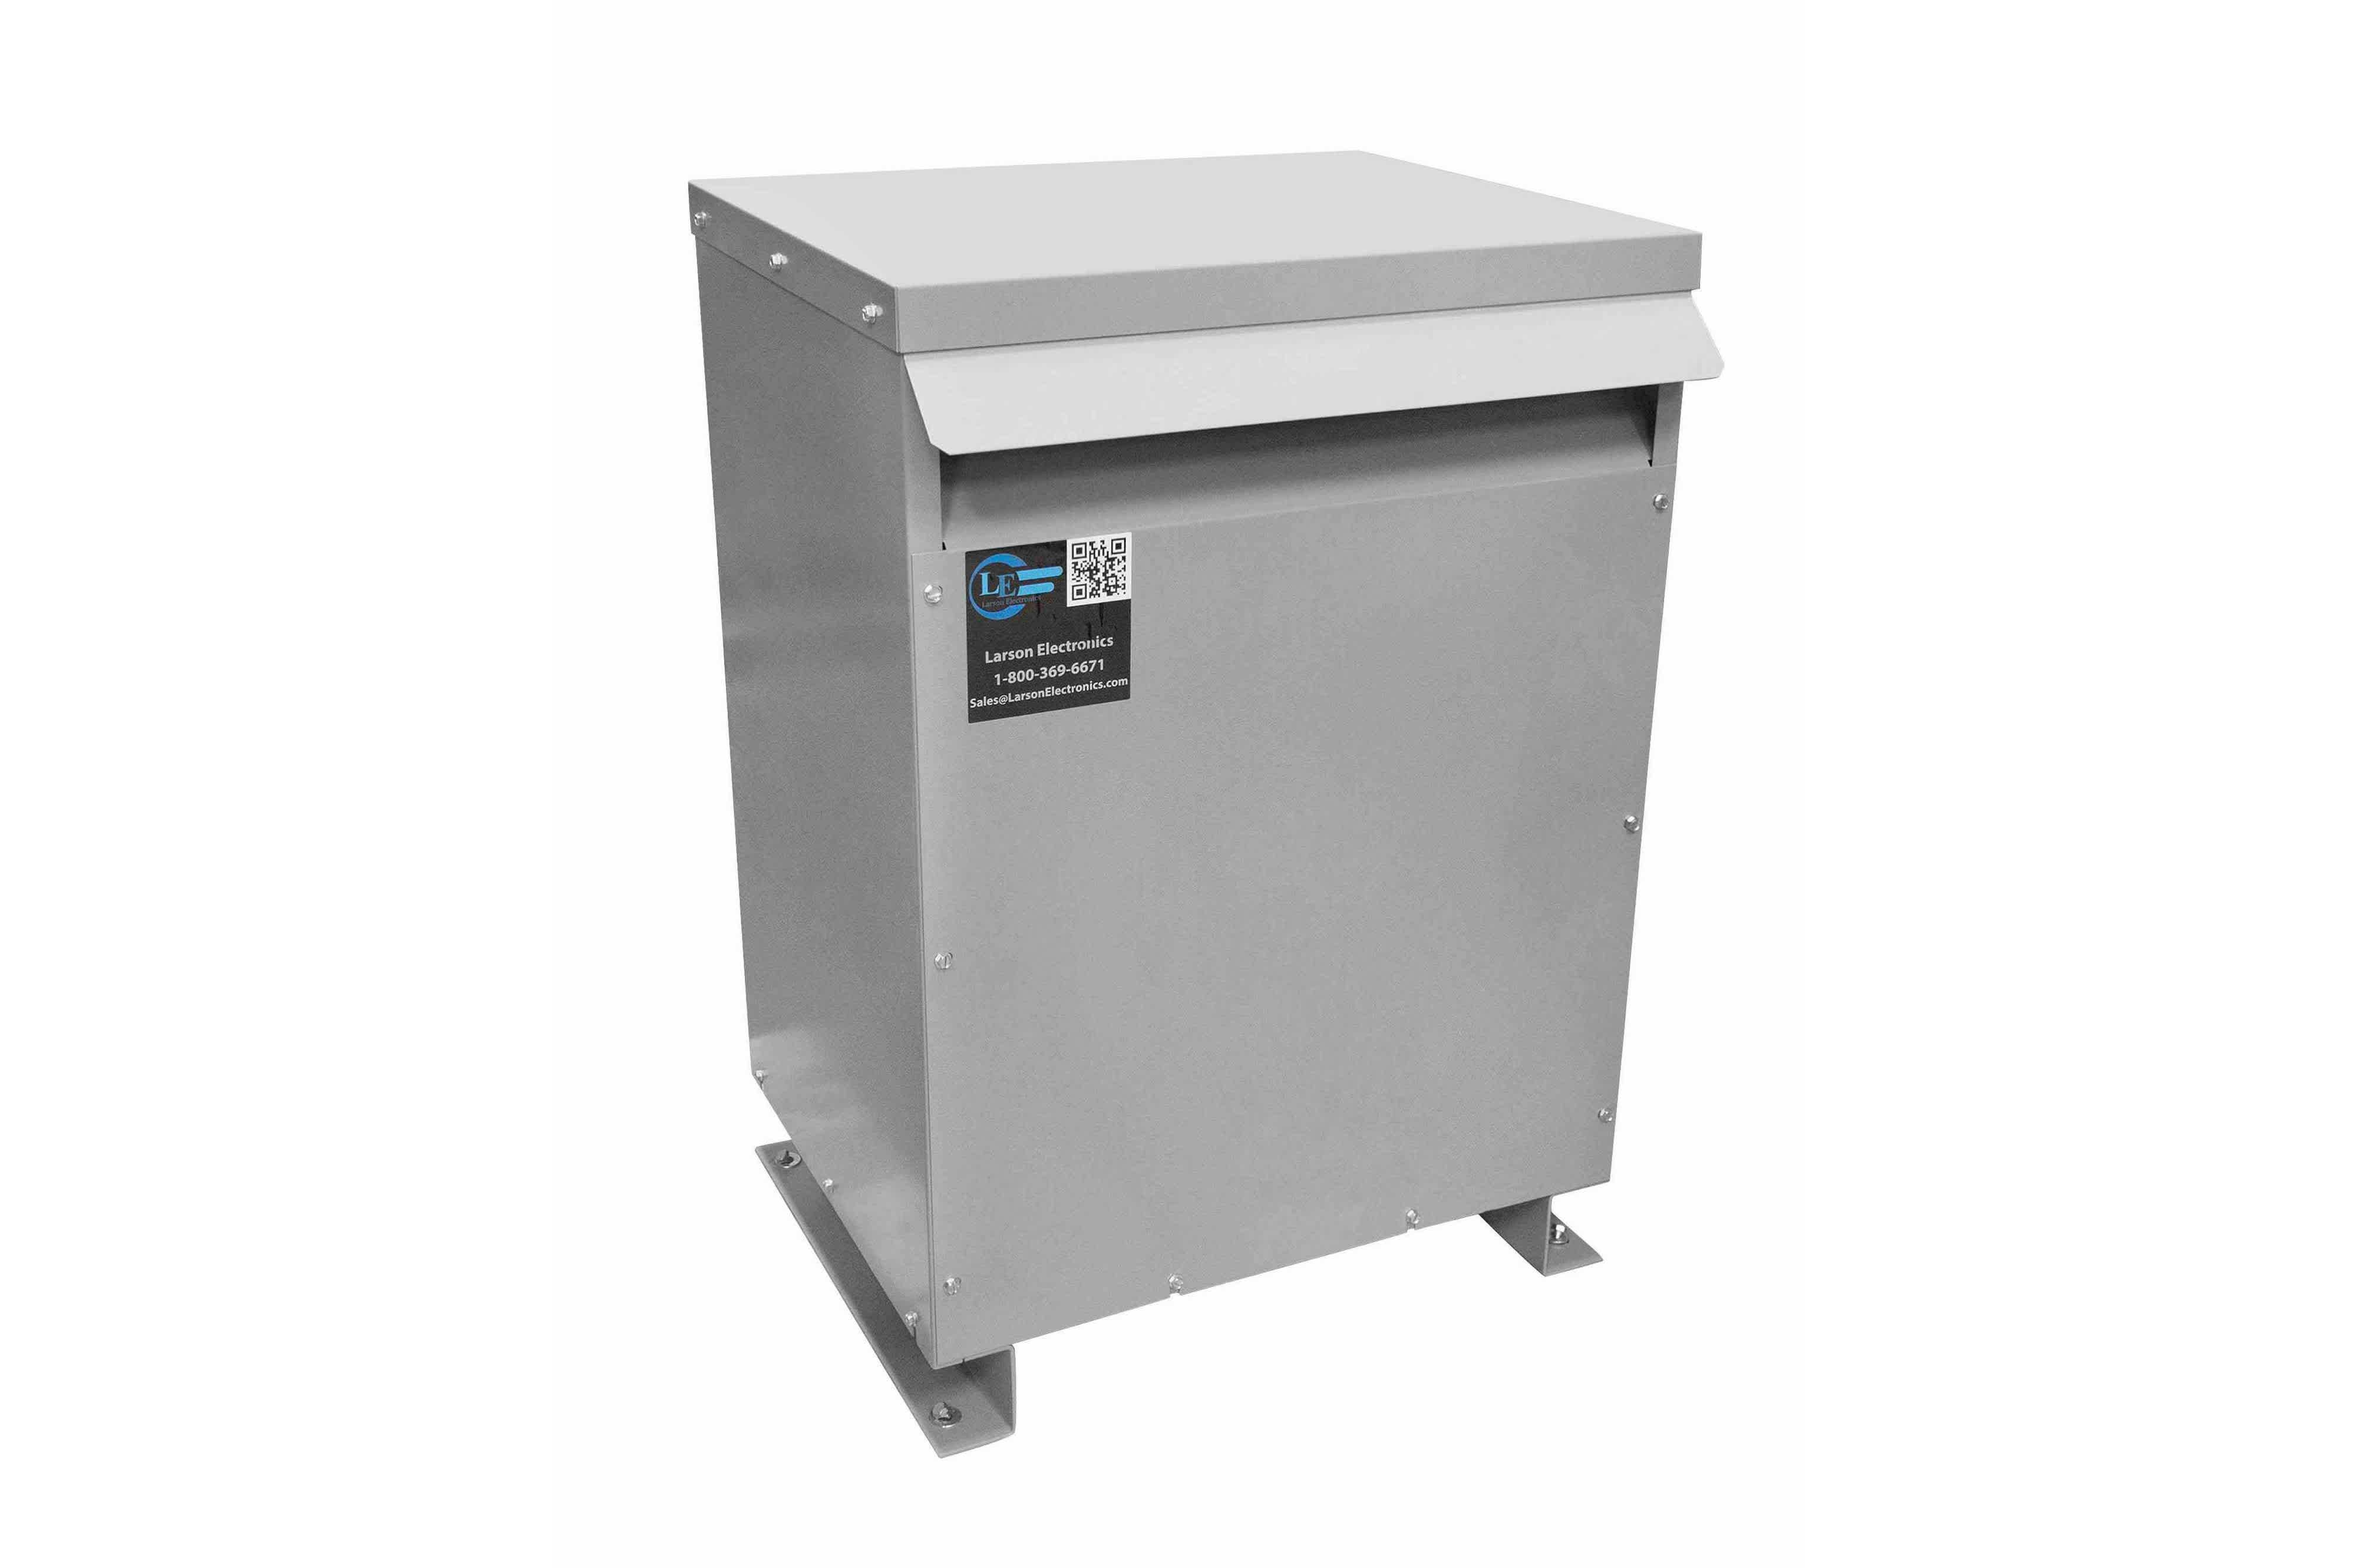 37.5 kVA 3PH Isolation Transformer, 600V Wye Primary, 400Y/231 Wye-N Secondary, N3R, Ventilated, 60 Hz